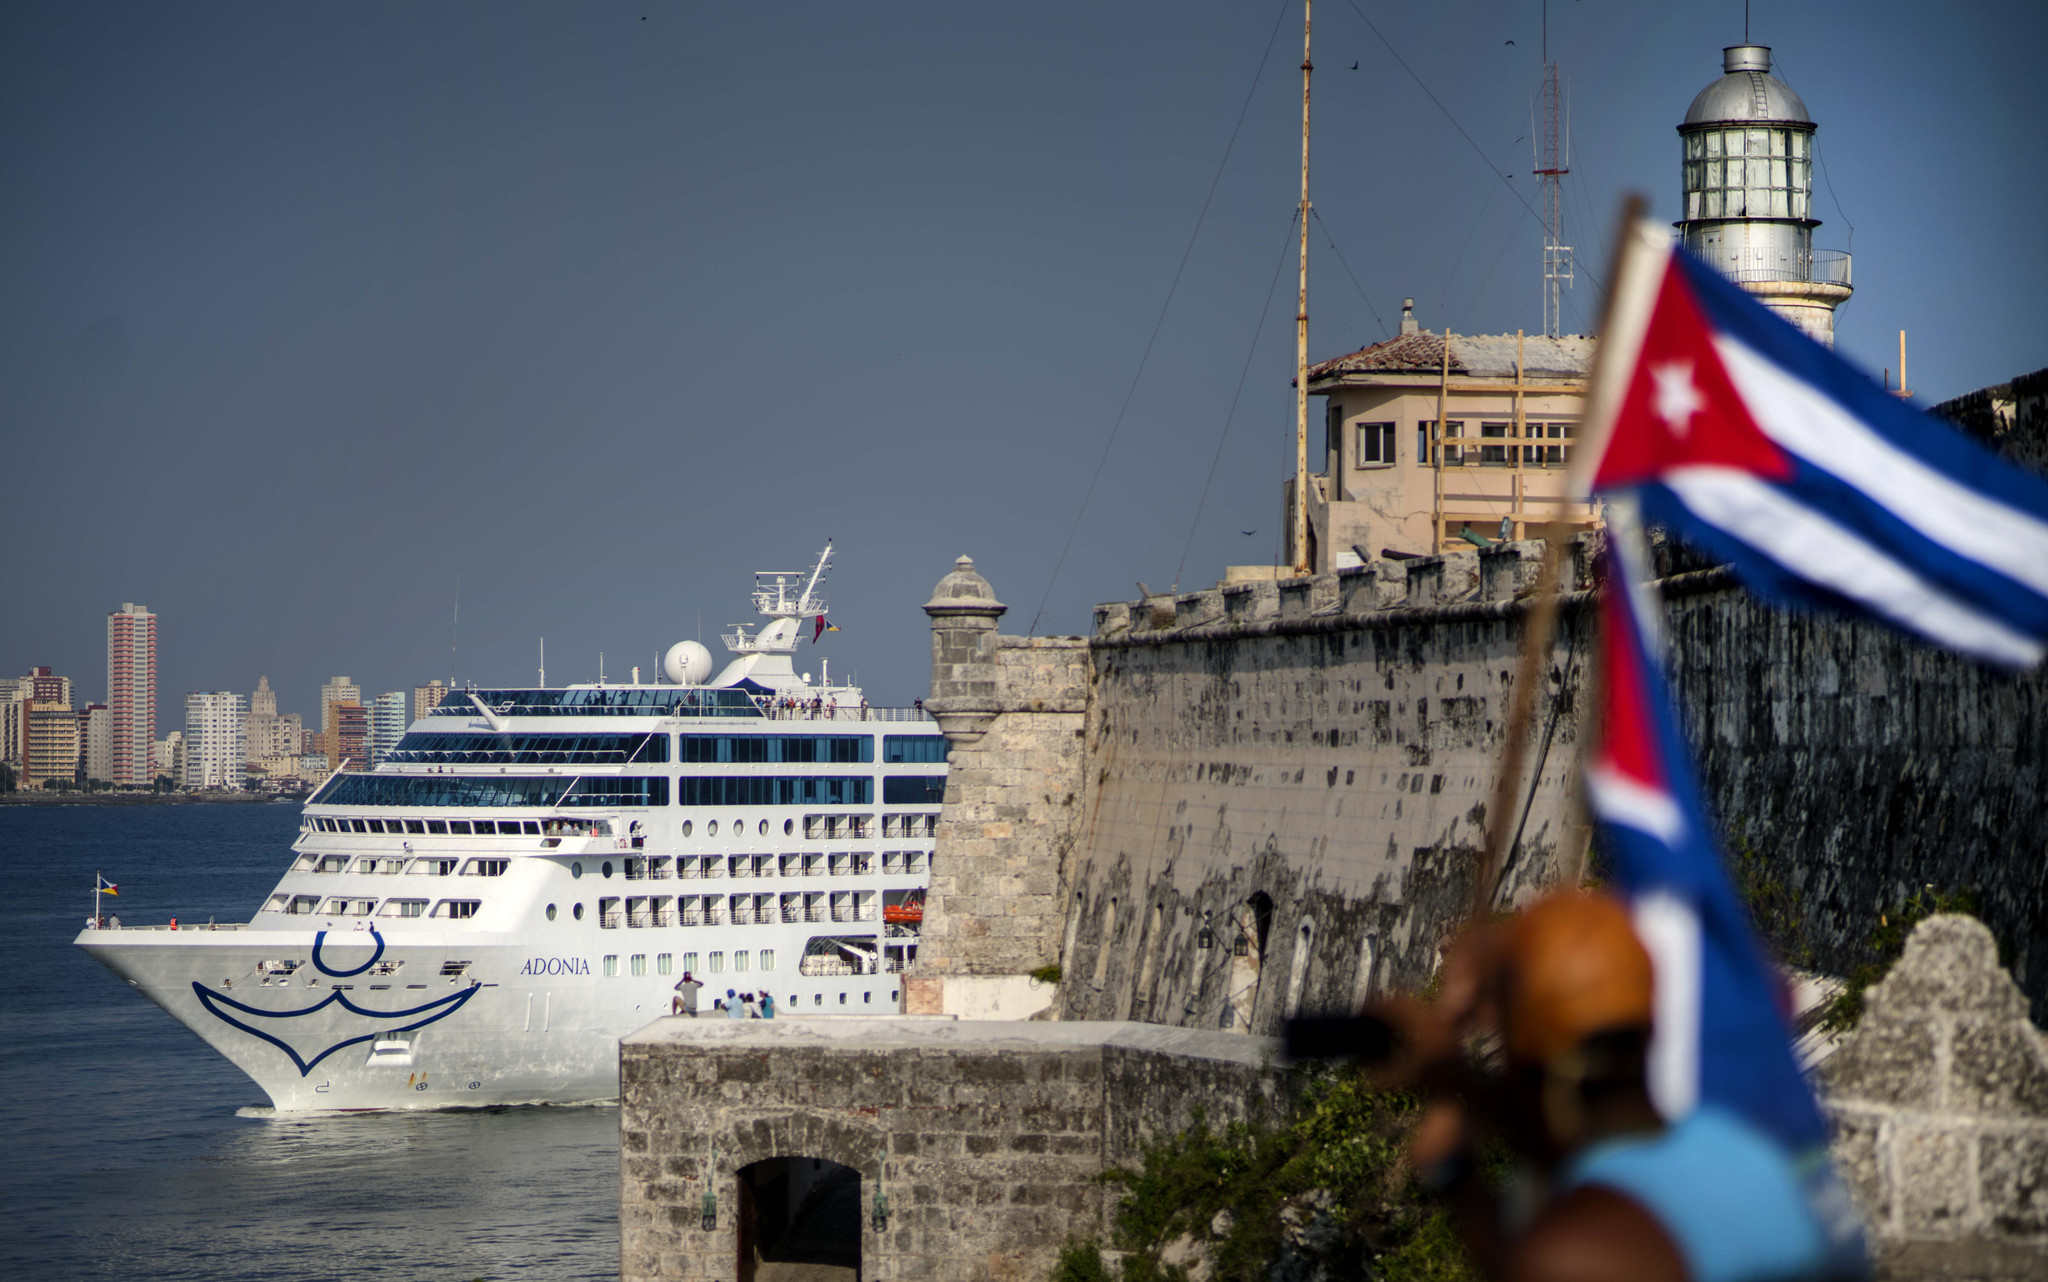 Cruiser arrivals to Cuba increase.